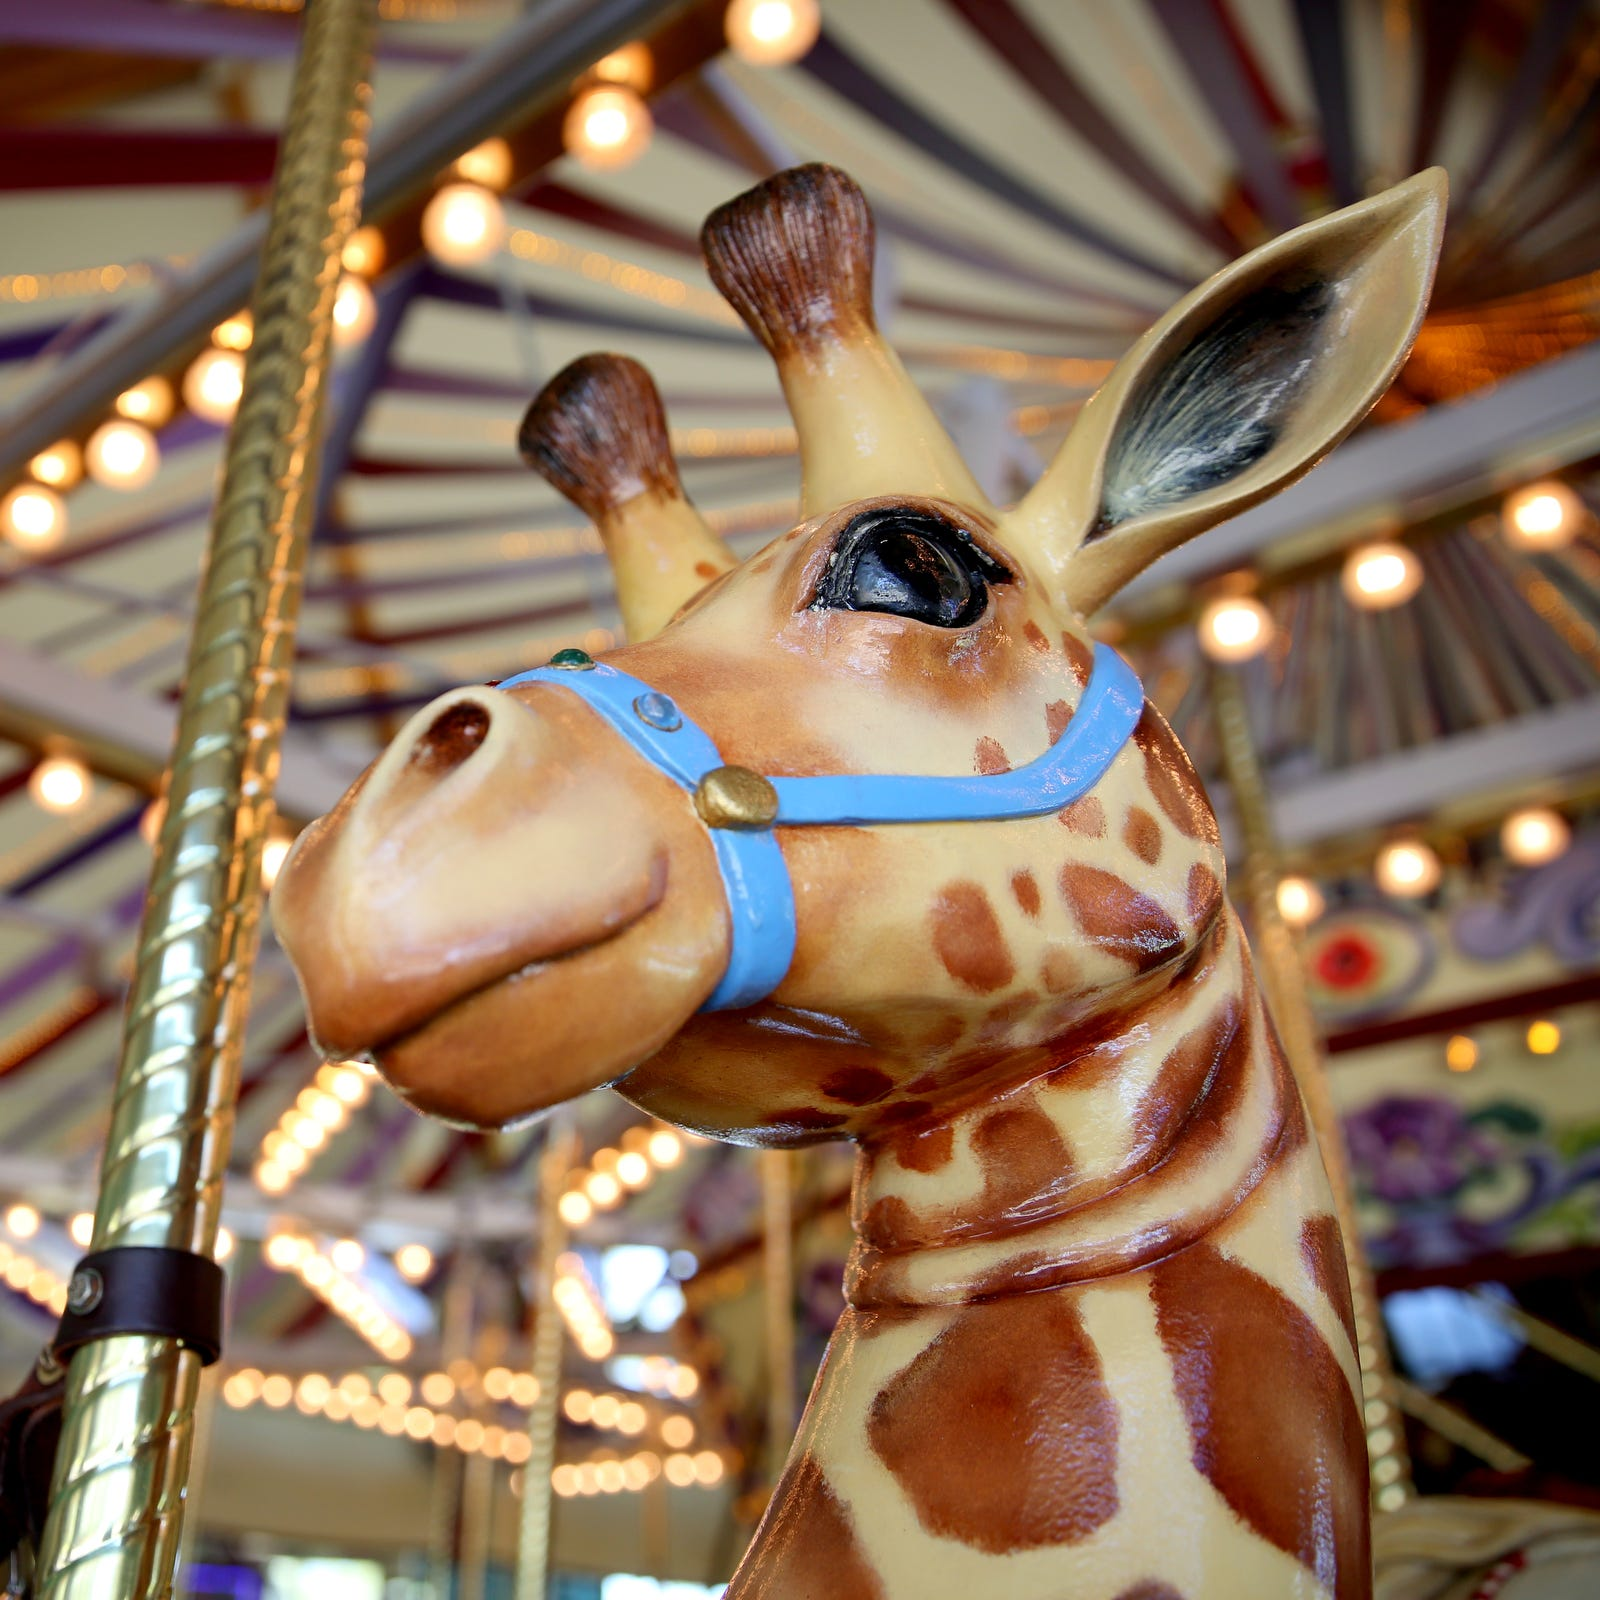 From a dragon to free cake, here's what's in store for Salem's Riverfront Carousel